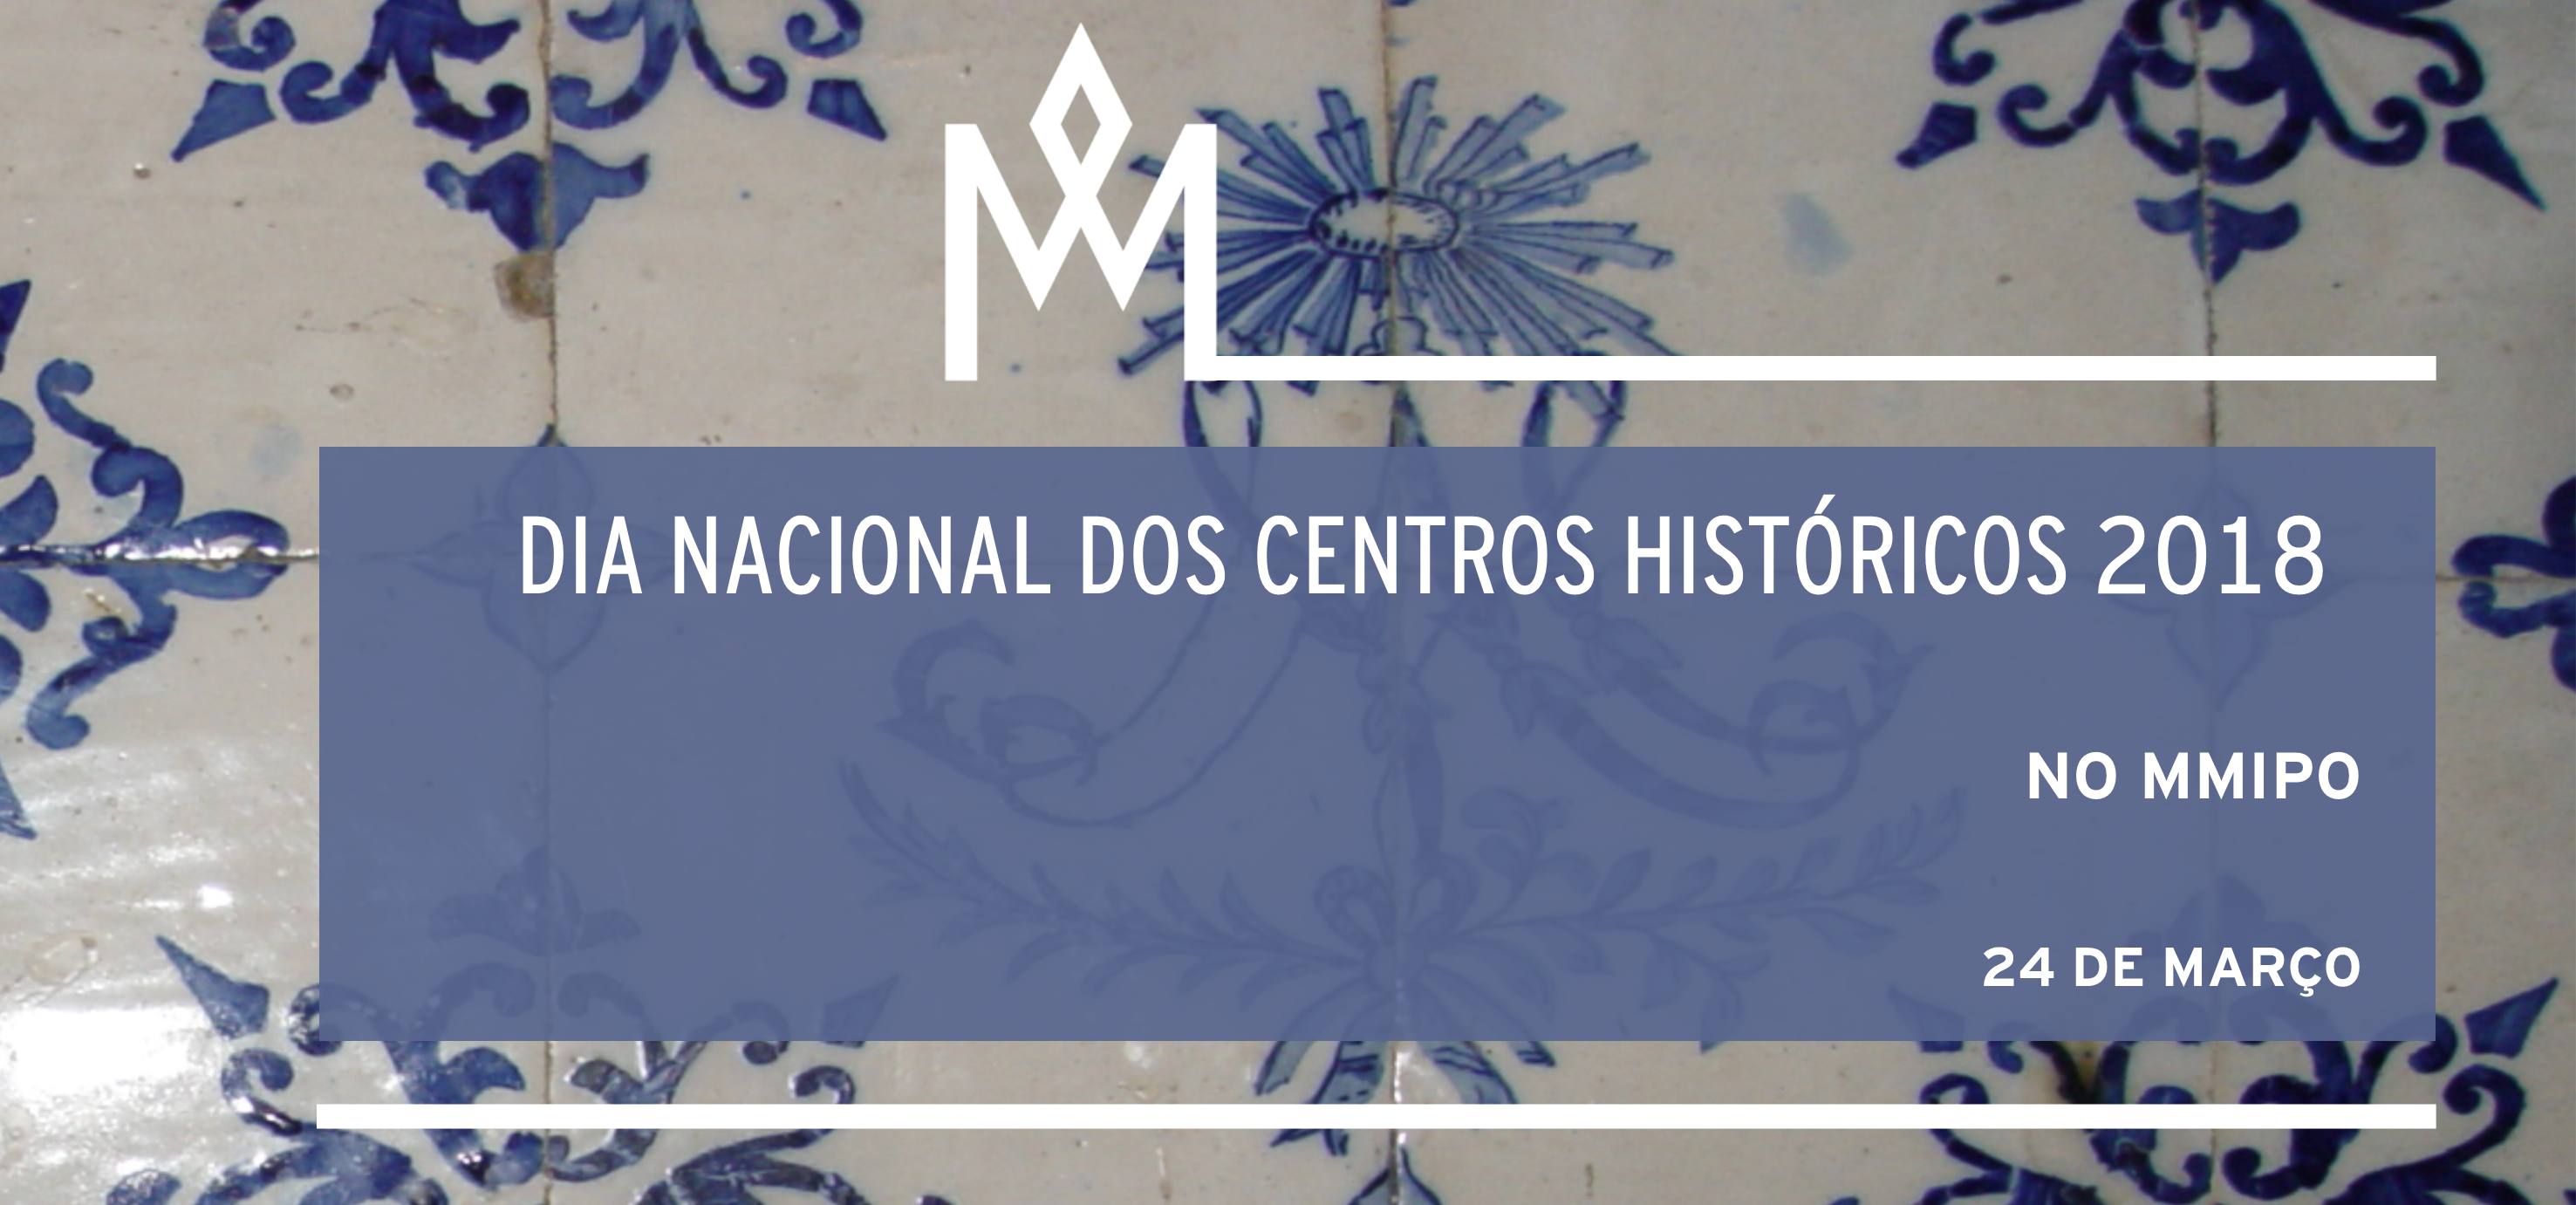 https://www.scmp.pt/assets/misc/img/noticias/2018/2018%2003%2024%20MMIPO%20DNCH/suportes%20dia%20centros%20hist%C3%B3ricos%20banner%20v.3.png